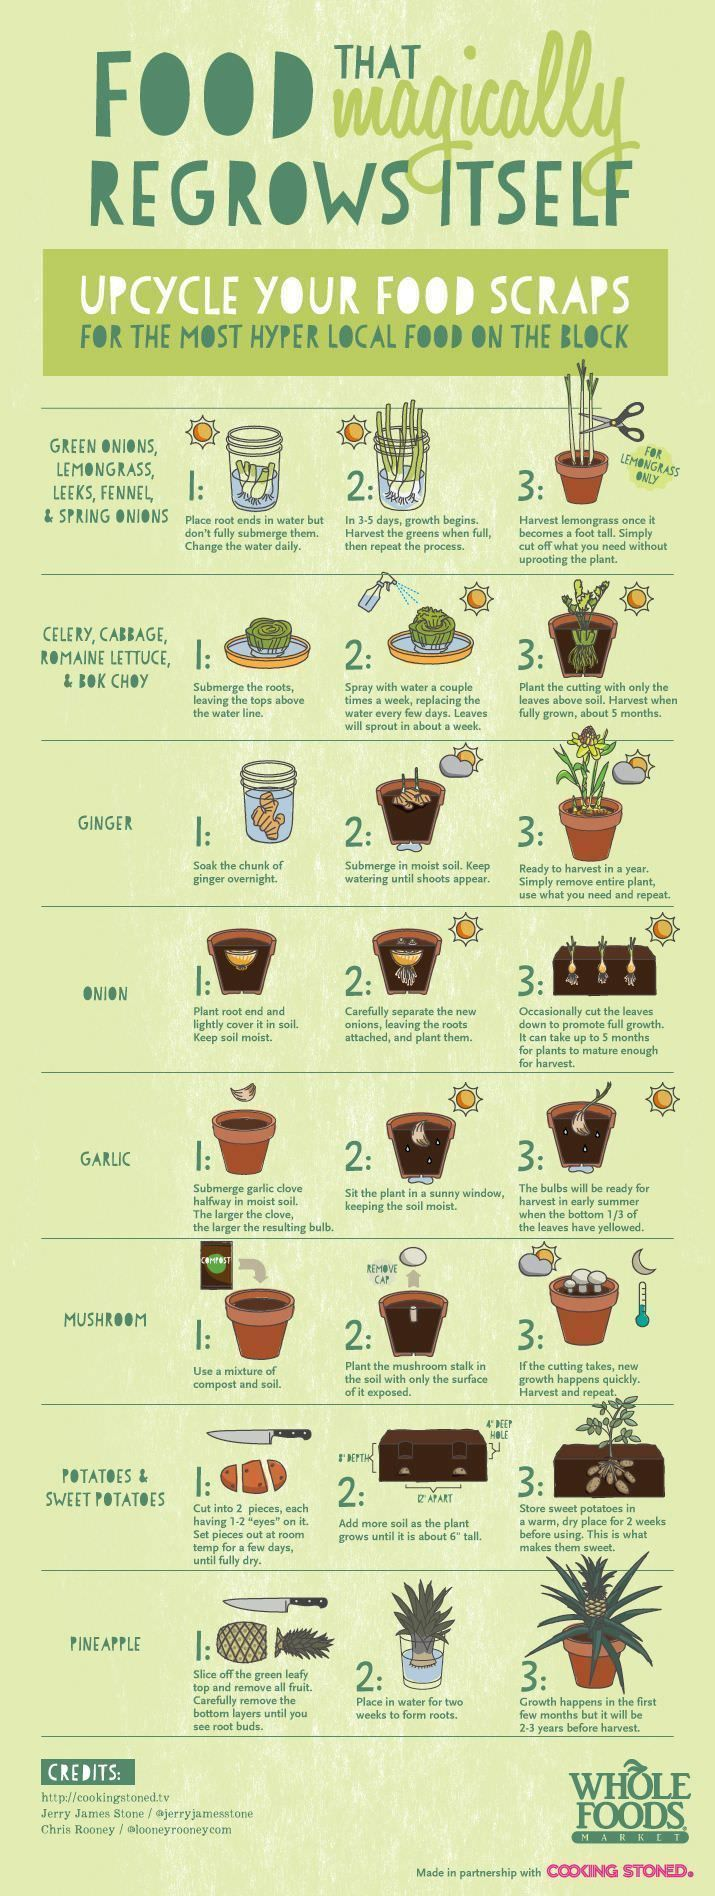 Upcycle Your Food Scraps